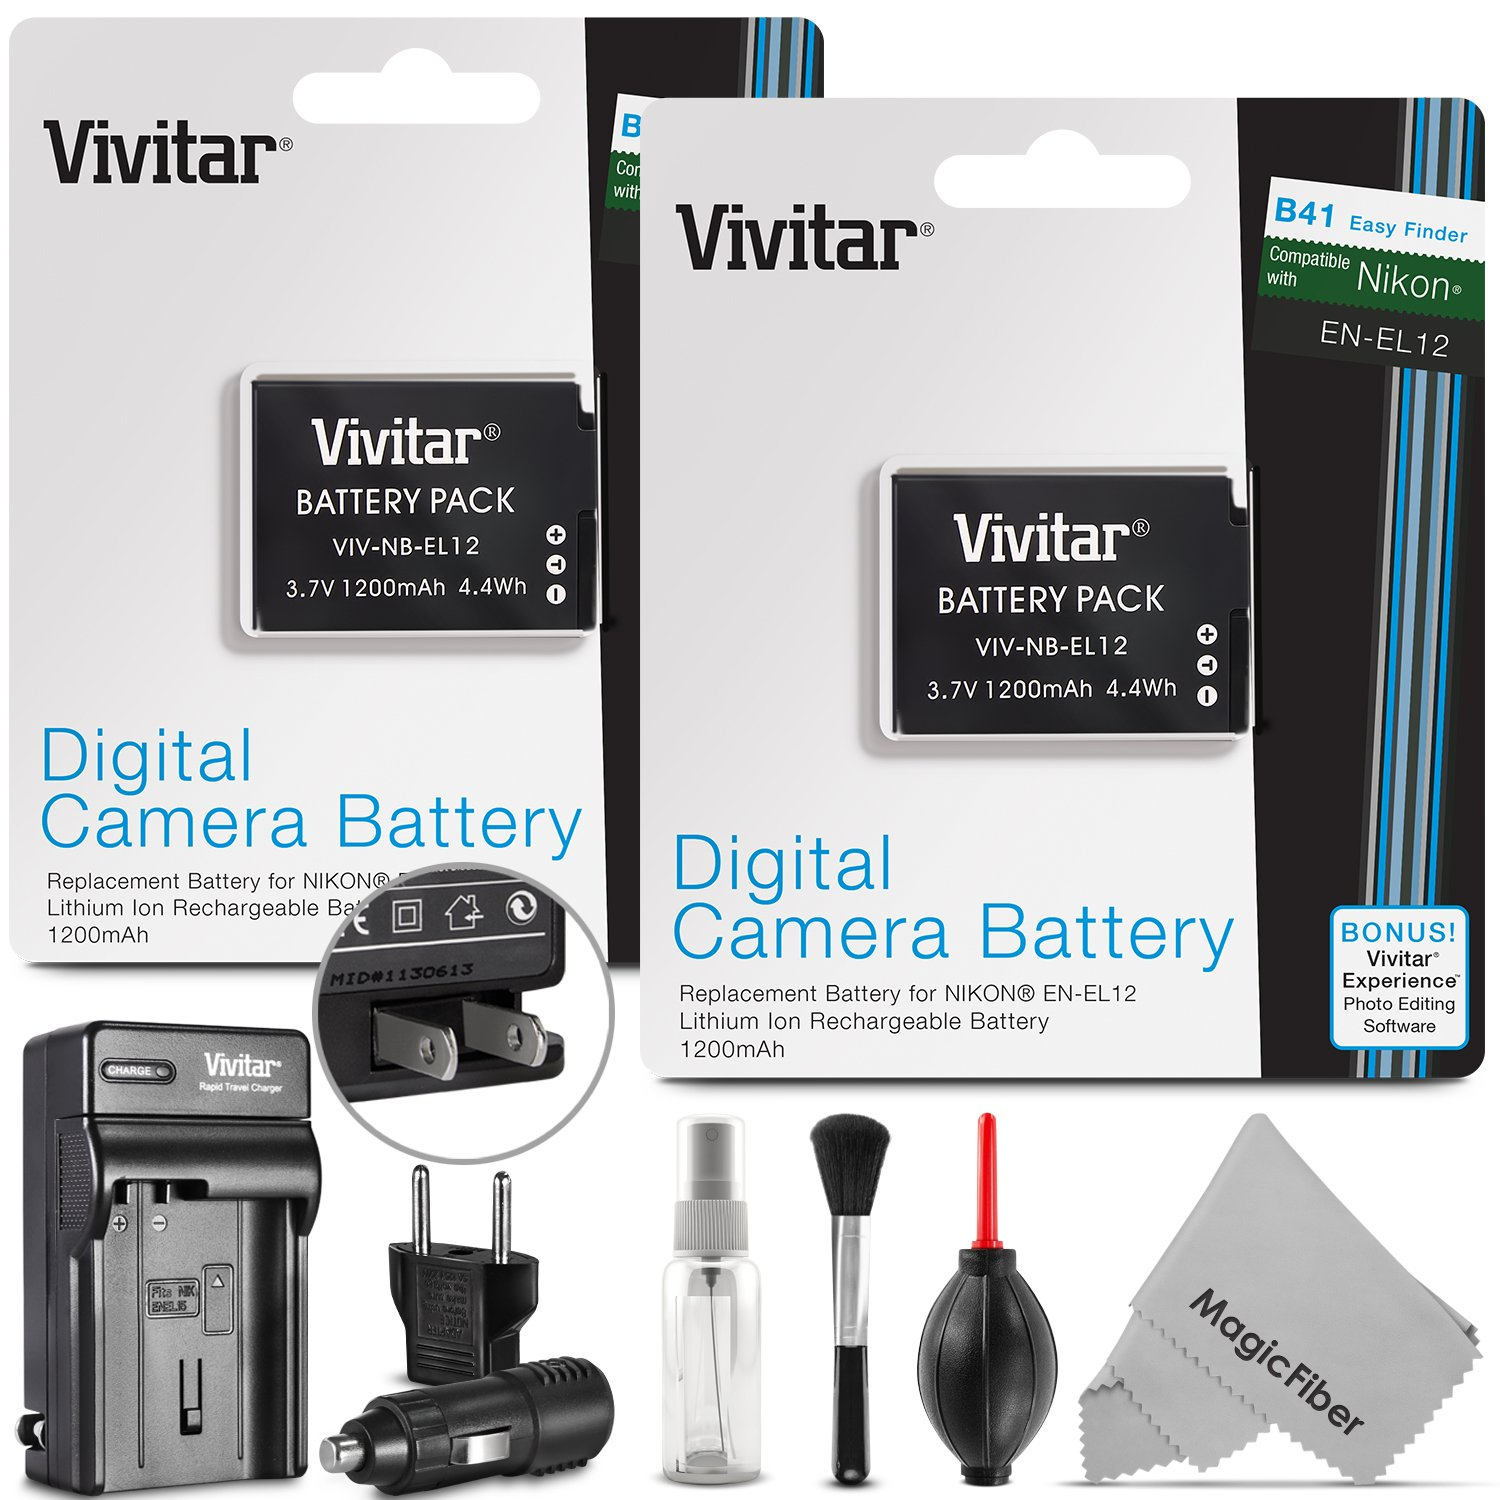 (2 Pack) EN-EL12 Battery and Charger Kit for NIKON Coolpix AW100 AW110 AW120 S9500 S9300 S9200 S9100 S8200 S8100 S6300 P330 - Includes: 2 Vivitar Ultra High Capacity Rechargeable 1200mAh Li-ion Batteries + AC/DC Vivitar Rapid Travel Charger + Cleaning Kit